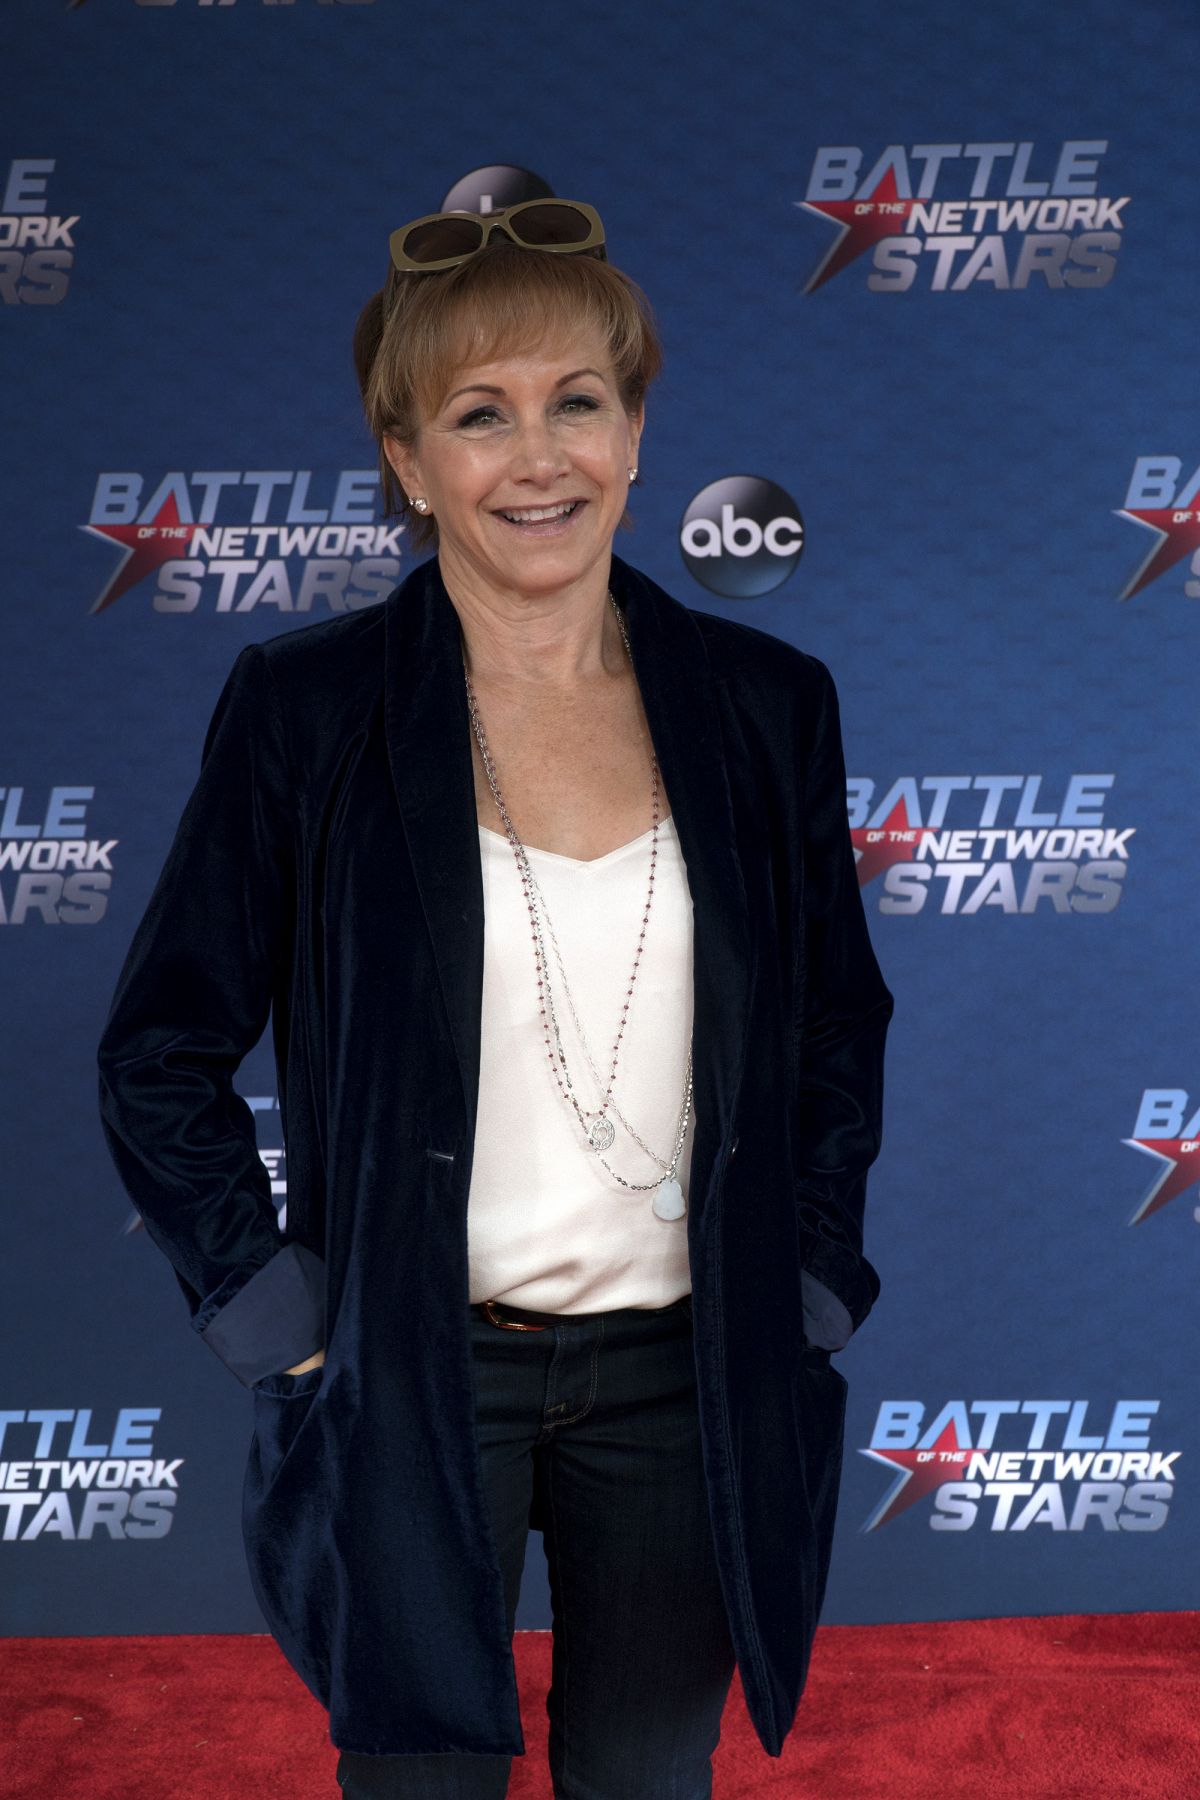 GABRIELLE CARTERIS - Battle of the Network Stars 2017 Promos